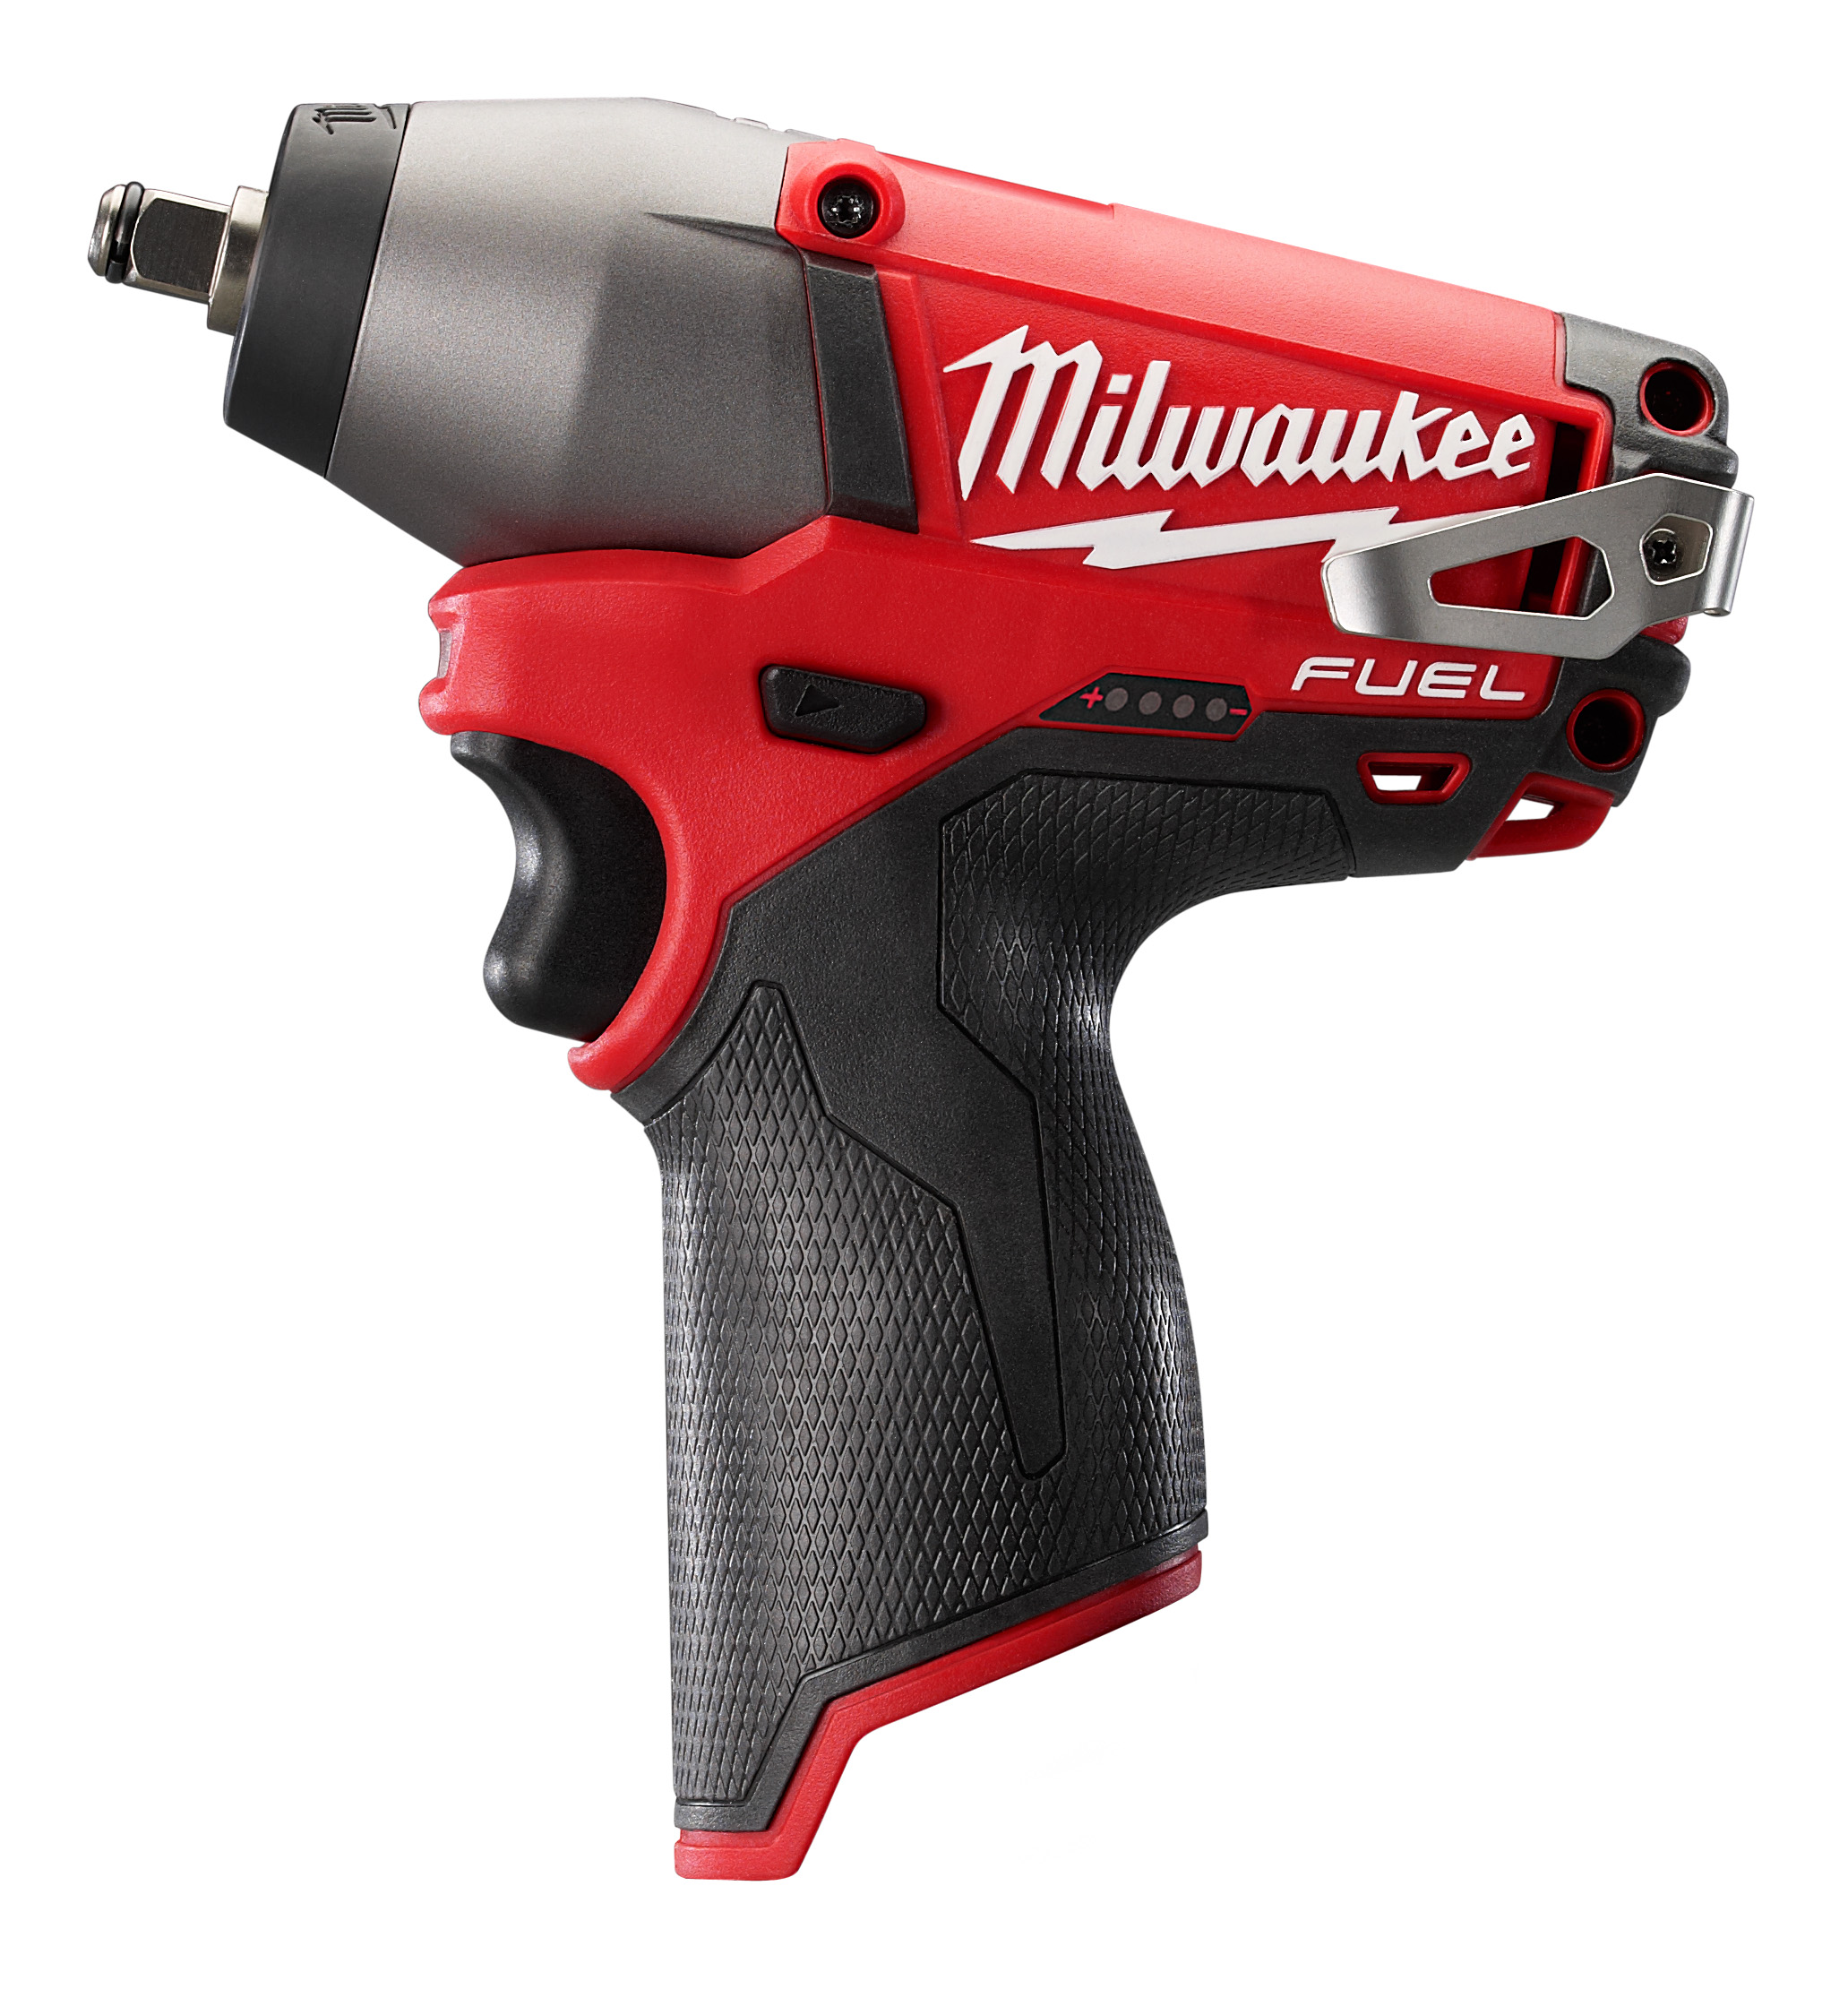 Milwaukee® M12™ 2450-22 Lightweight Cordless Impact Driver Kit, 1/4 in Hex Drive, 0 to 3000 ipm, 850 in-lb Torque, 12 V, 6-1/2 in OAL